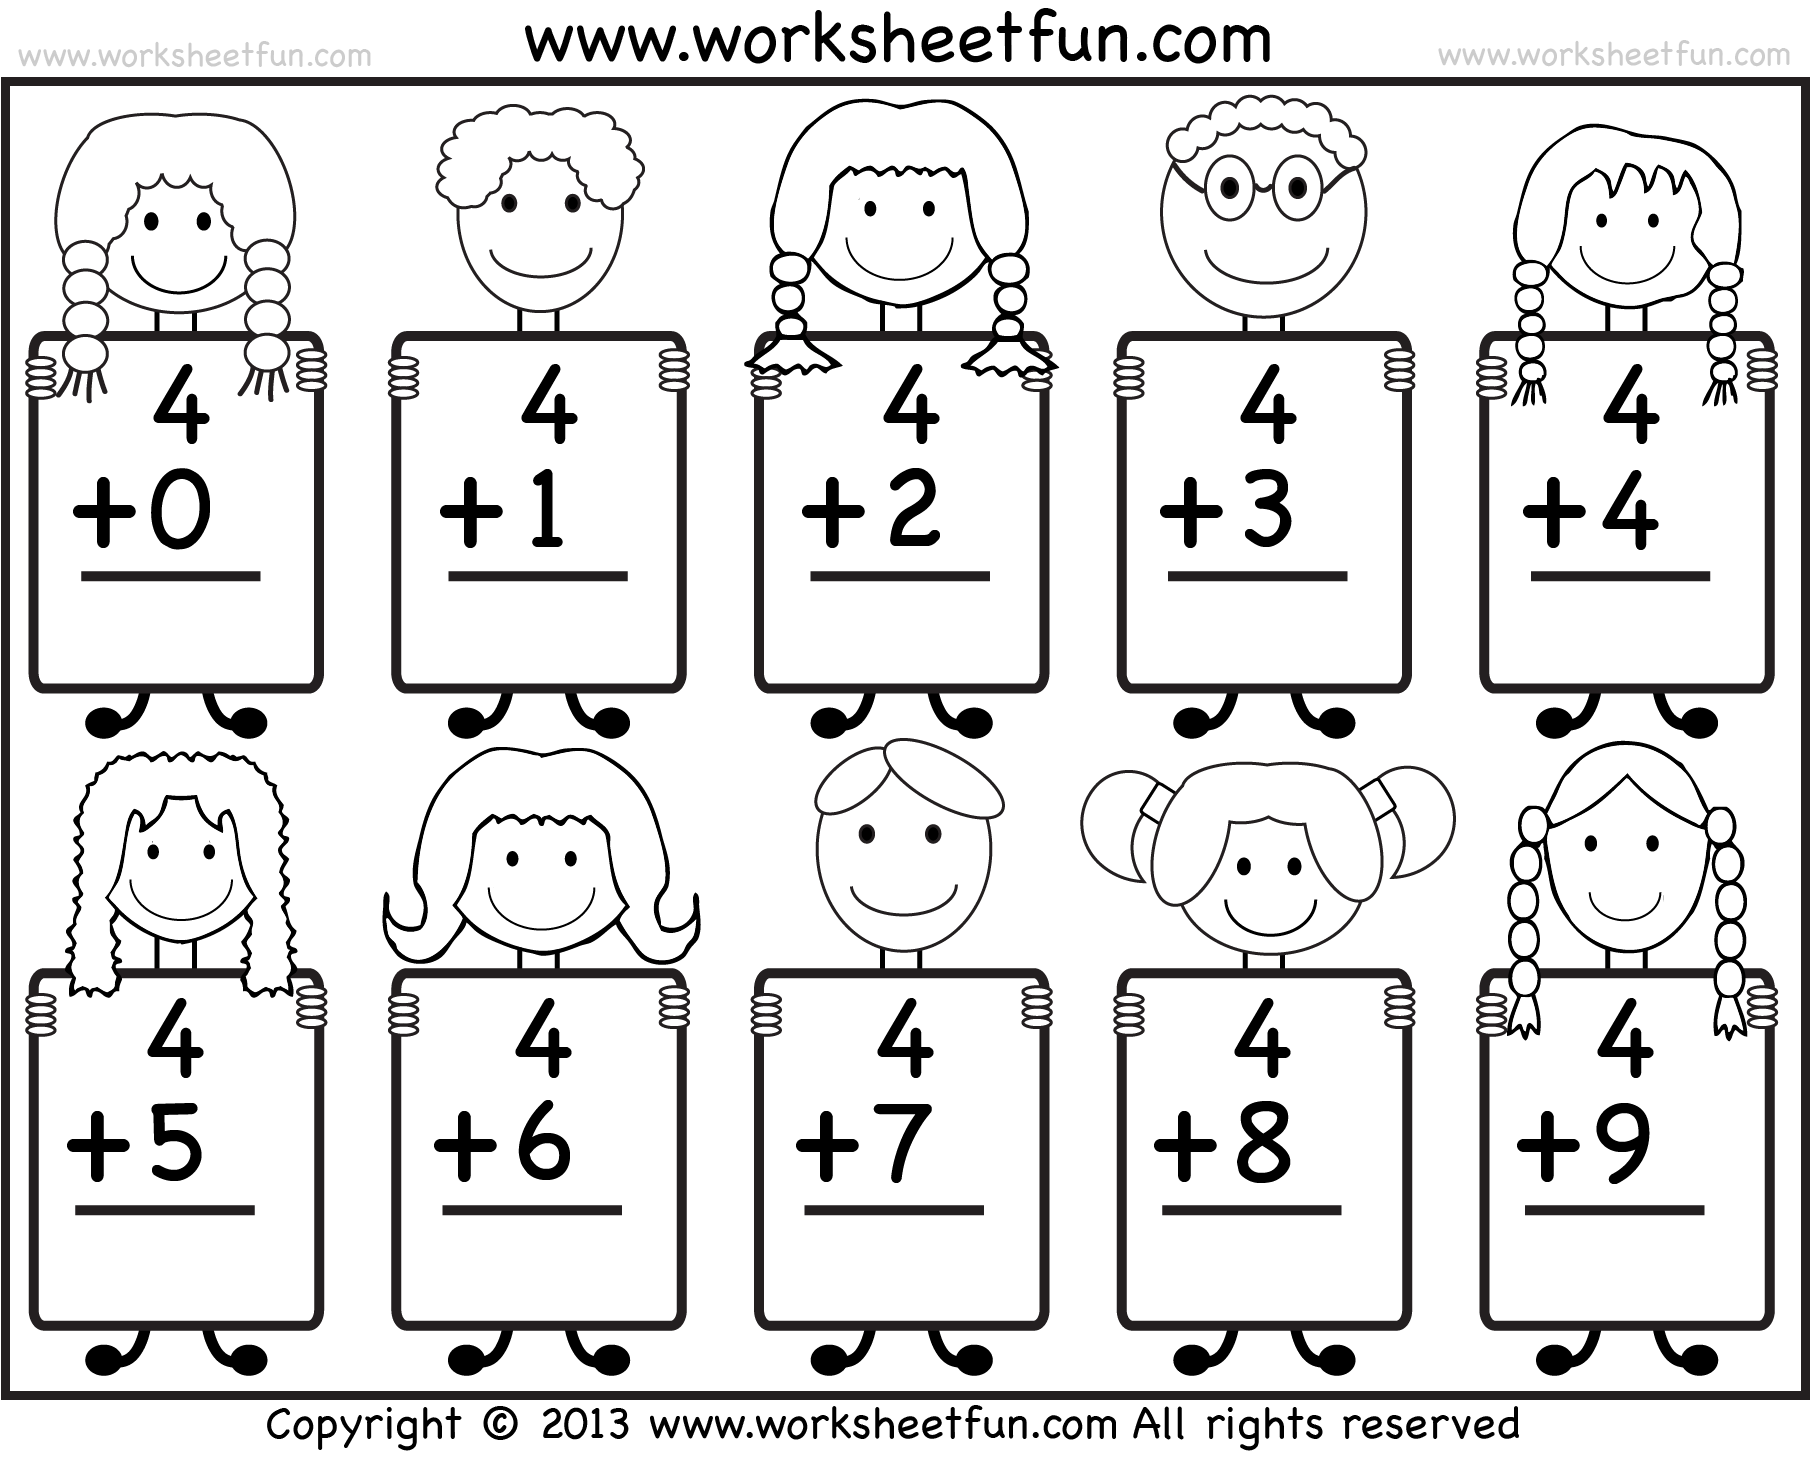 Printables Math Worksheets For Kinder printable math worksheets for kindergarten addition worksheet coloring free for